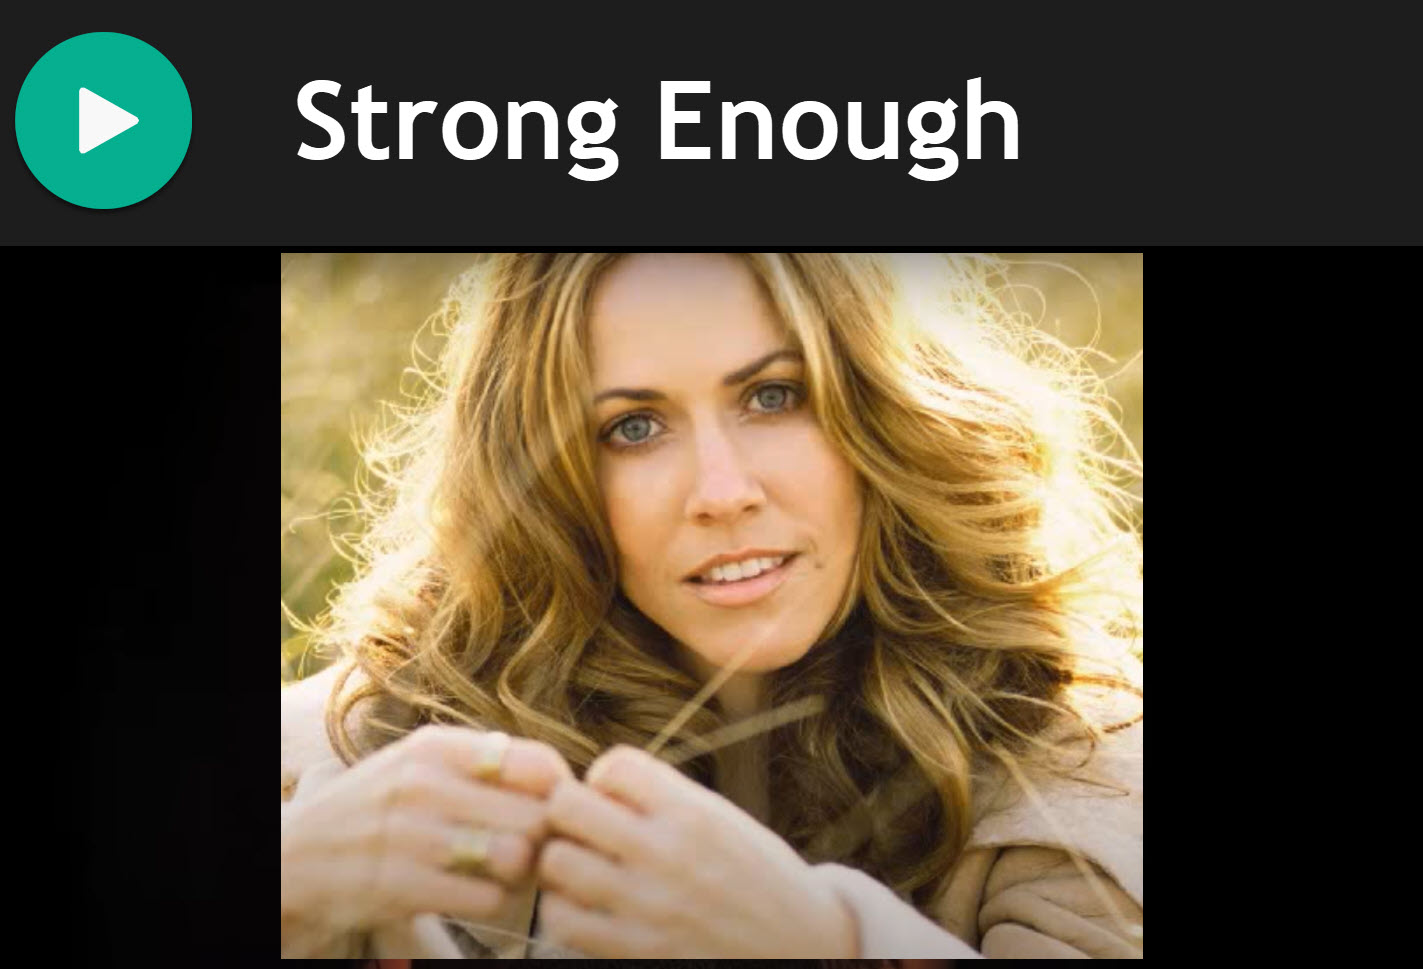 Strong Enough by Sheryl Crowe for Practise Chanter